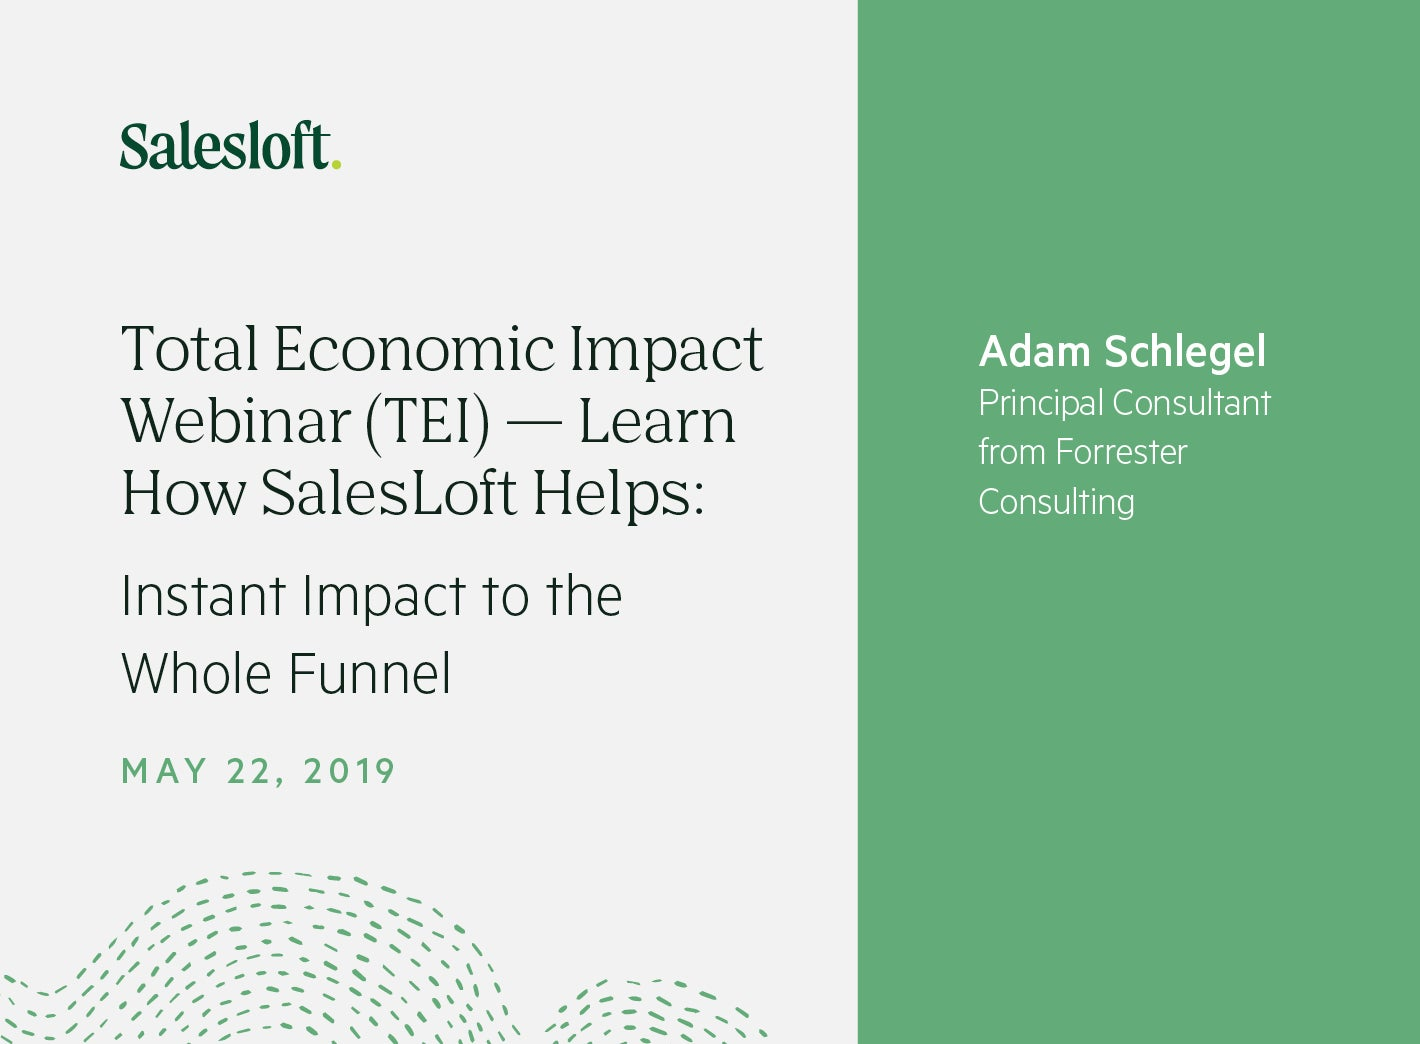 Total Economic Impact Webinar (TEI) — Learn How SalesLoft Helps: Instant Impact to the Whole Funnel